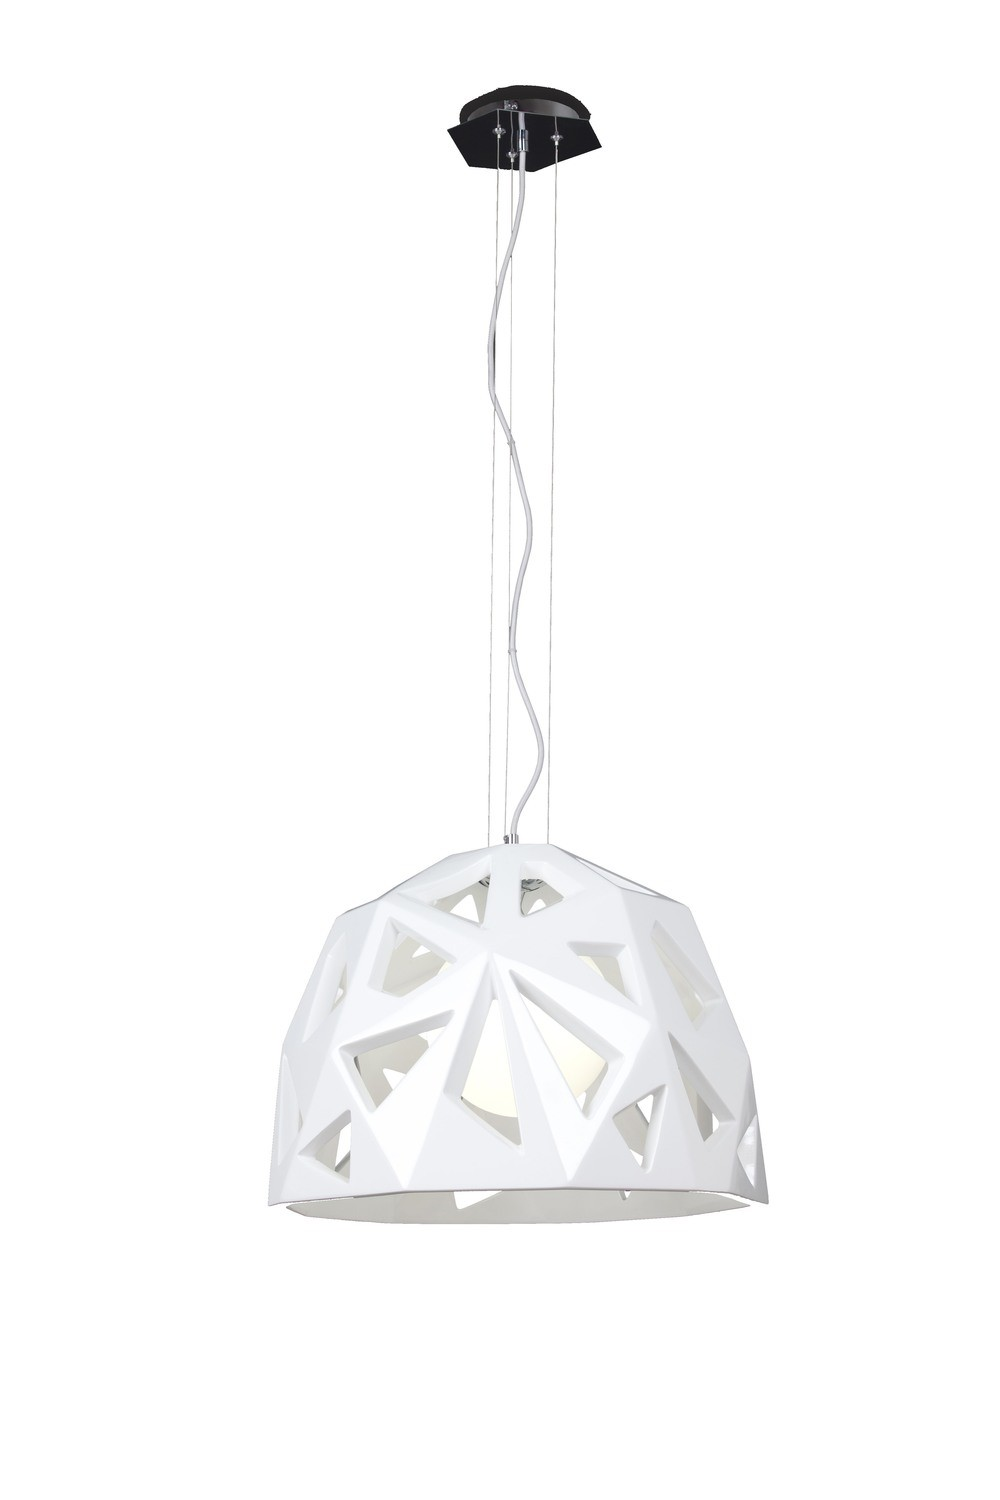 Facette Pendant 1 Light E27, Gloss White/Polished Chrome